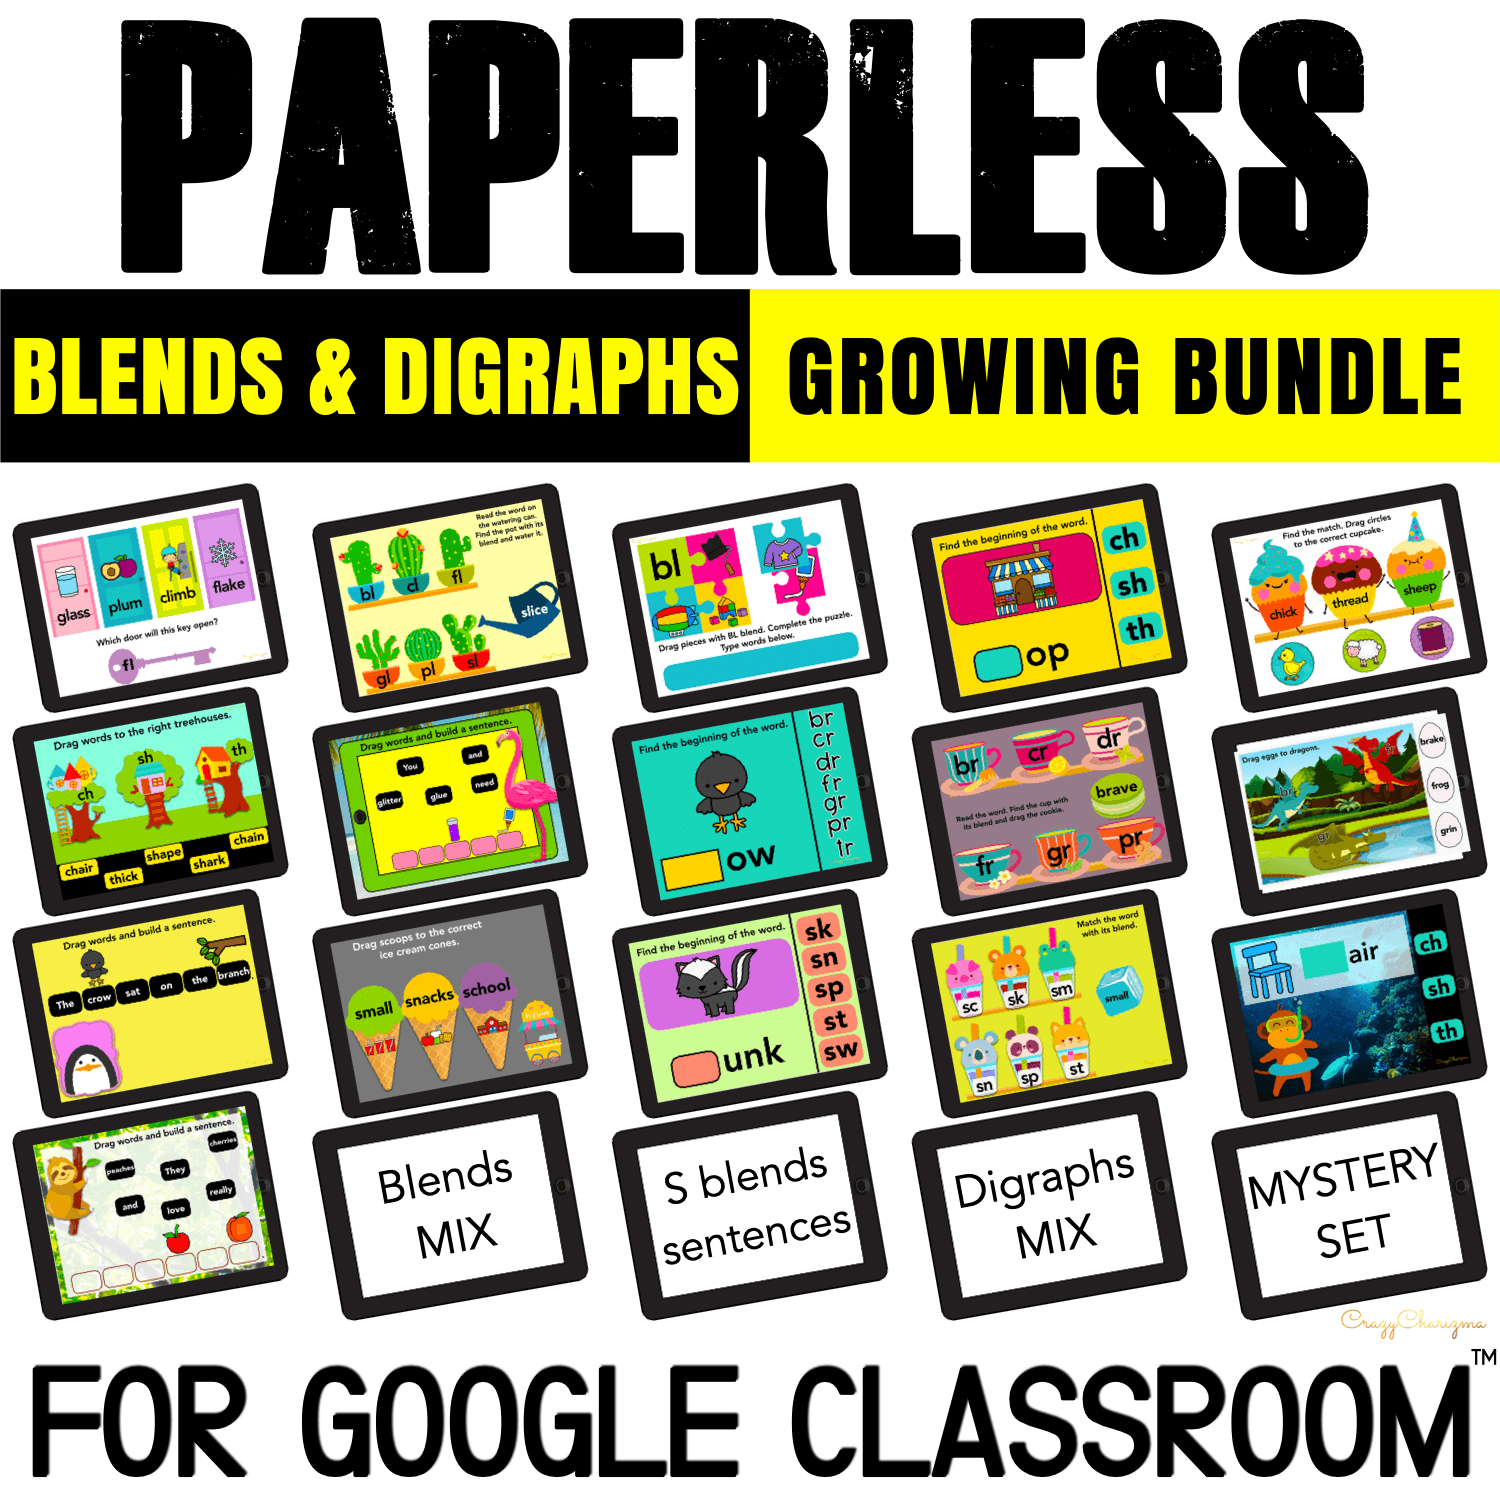 Need to engage kids with interactive blends and digraphs activities? Check out this GROWING BUNDLE that when completed will have 20 sets! Created for Google Slides and Google Classroom, you can use it for distance learning or in the classroom.